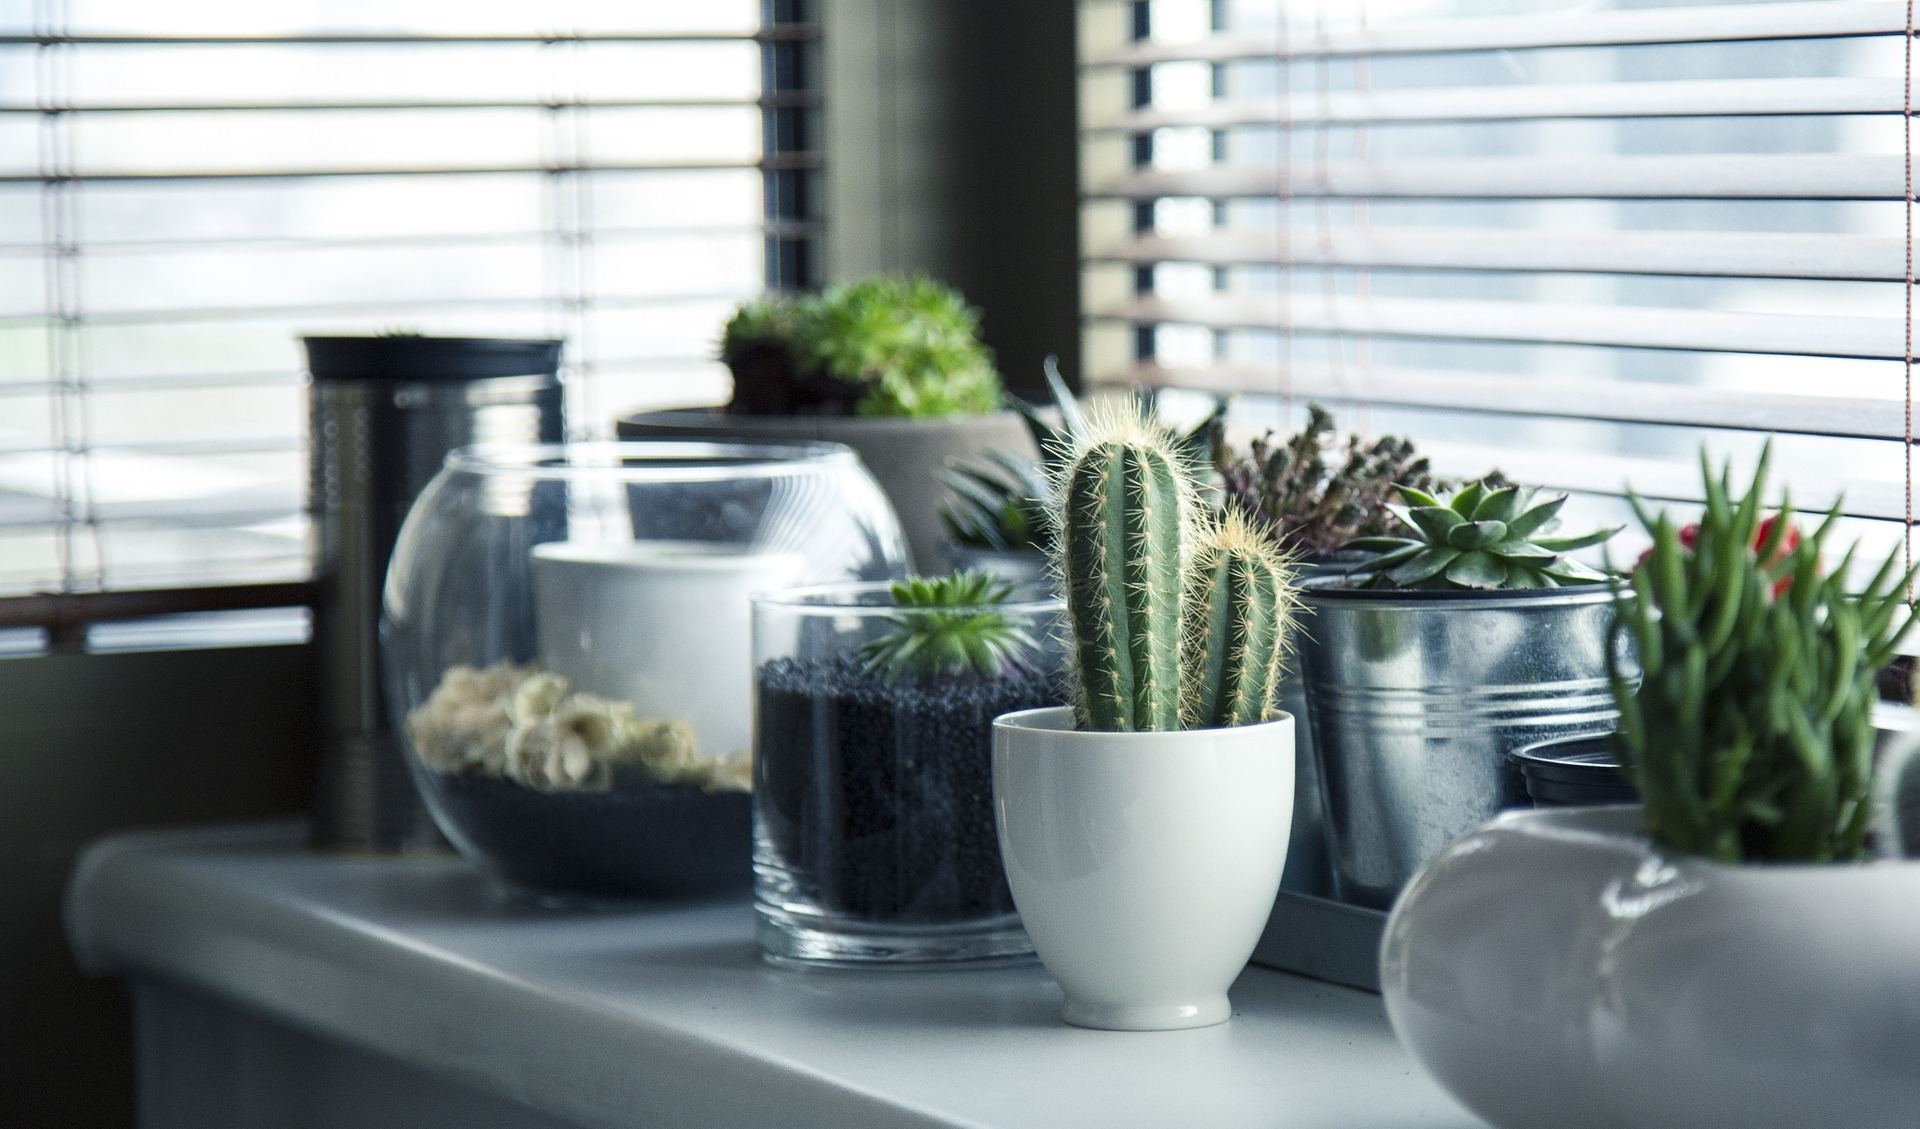 Substituting tradition with succulents